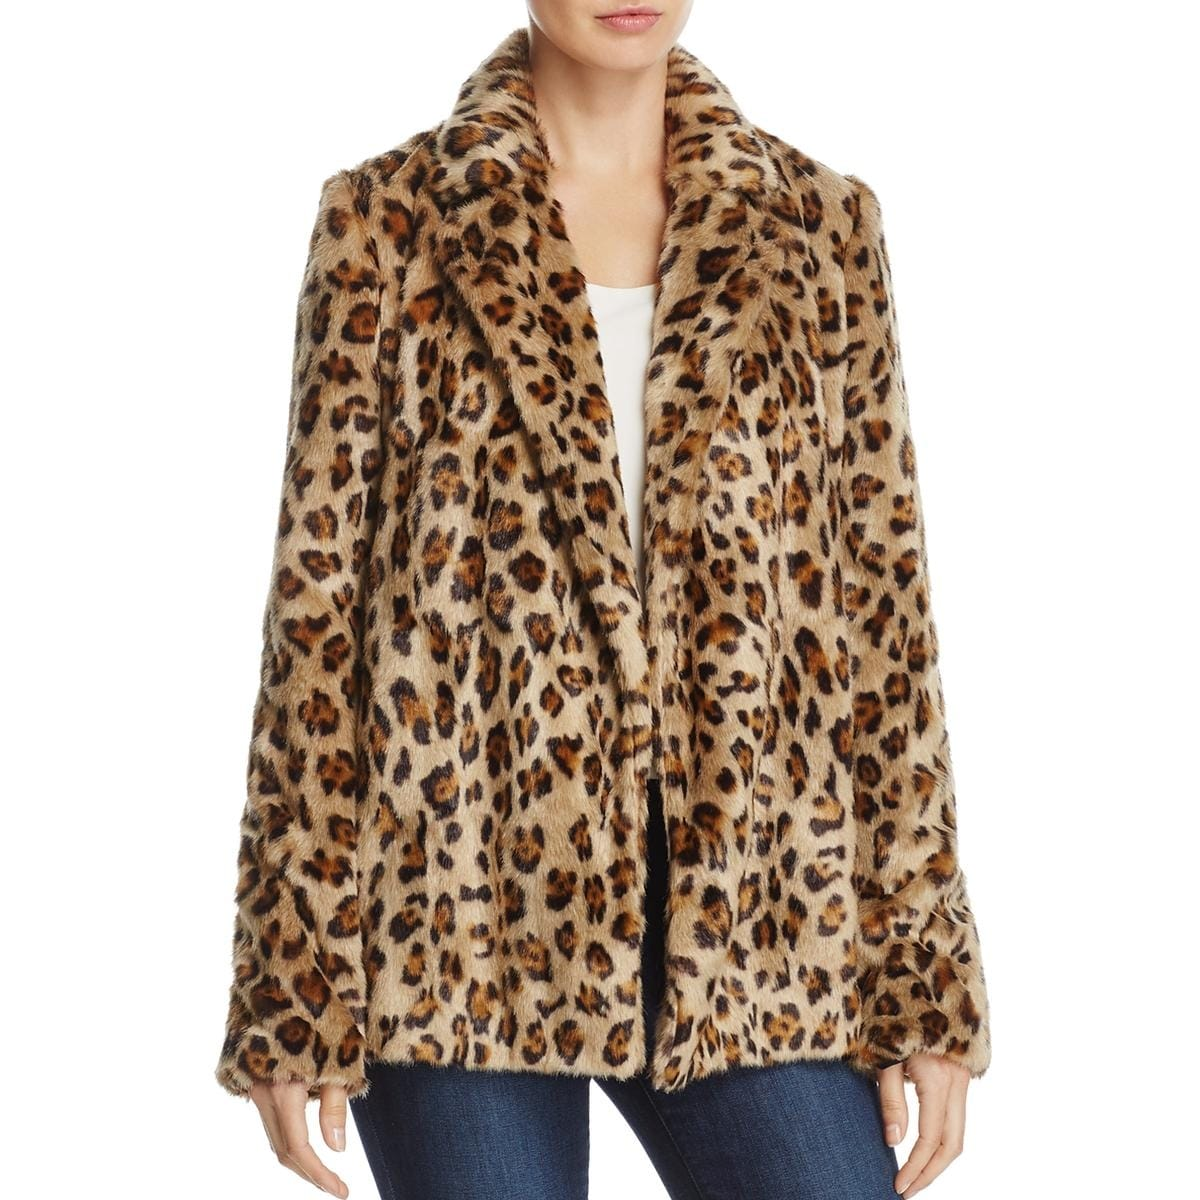 2b288f2767 Shop Theory Womens Clairene Faux Fur Coat Winter Leopard Print - Free  Shipping Today - Overstock - 24031875